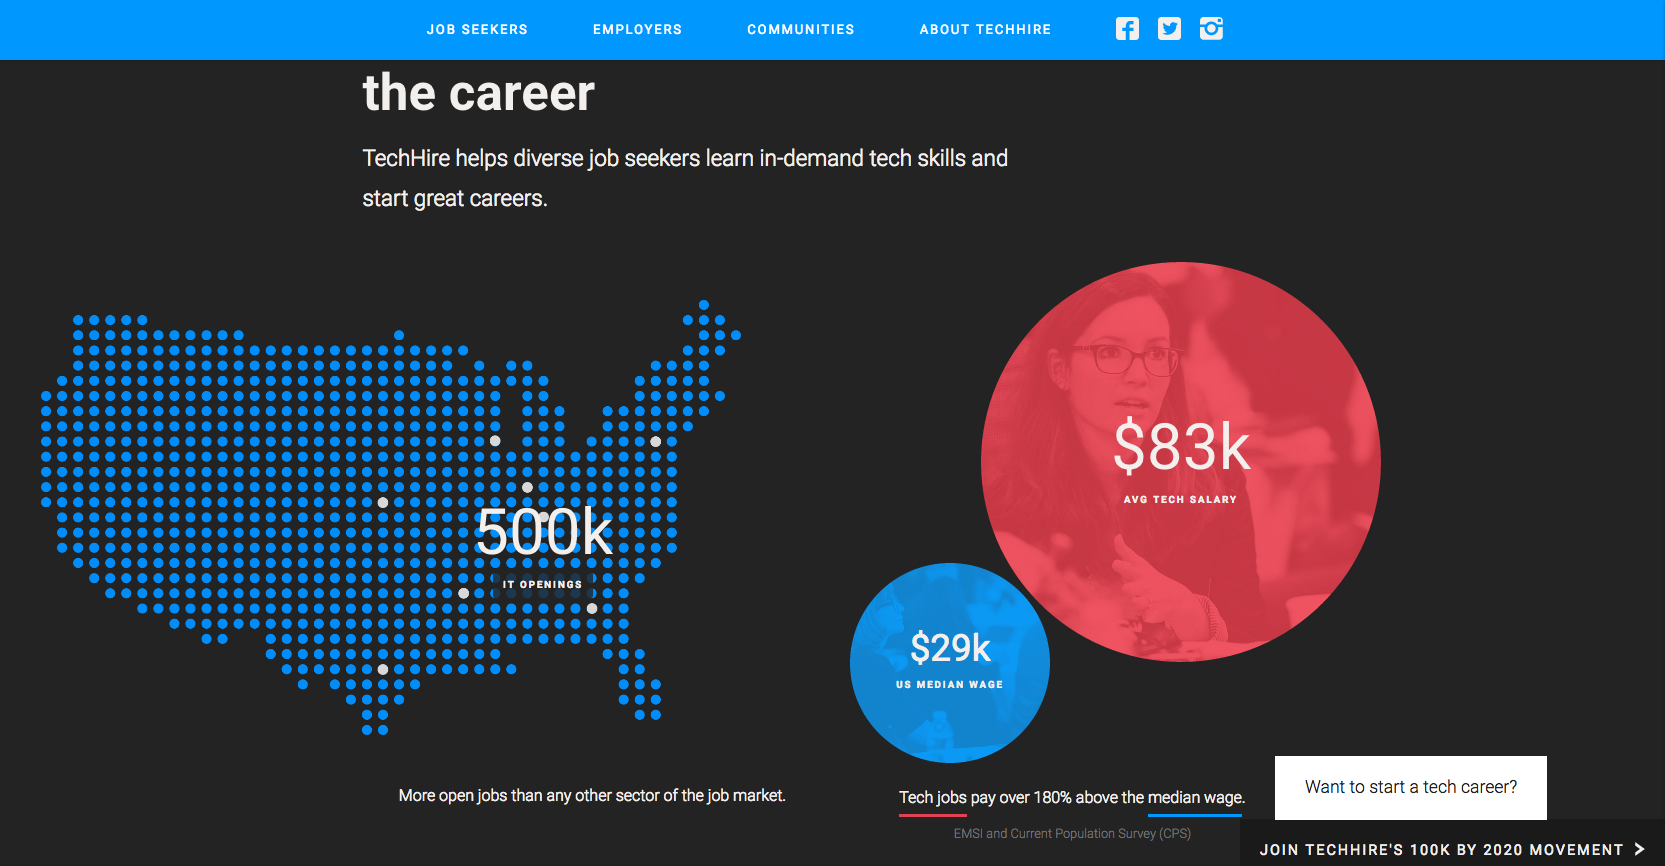 Infographic showing IT jobs, average tech salary, and US median wage